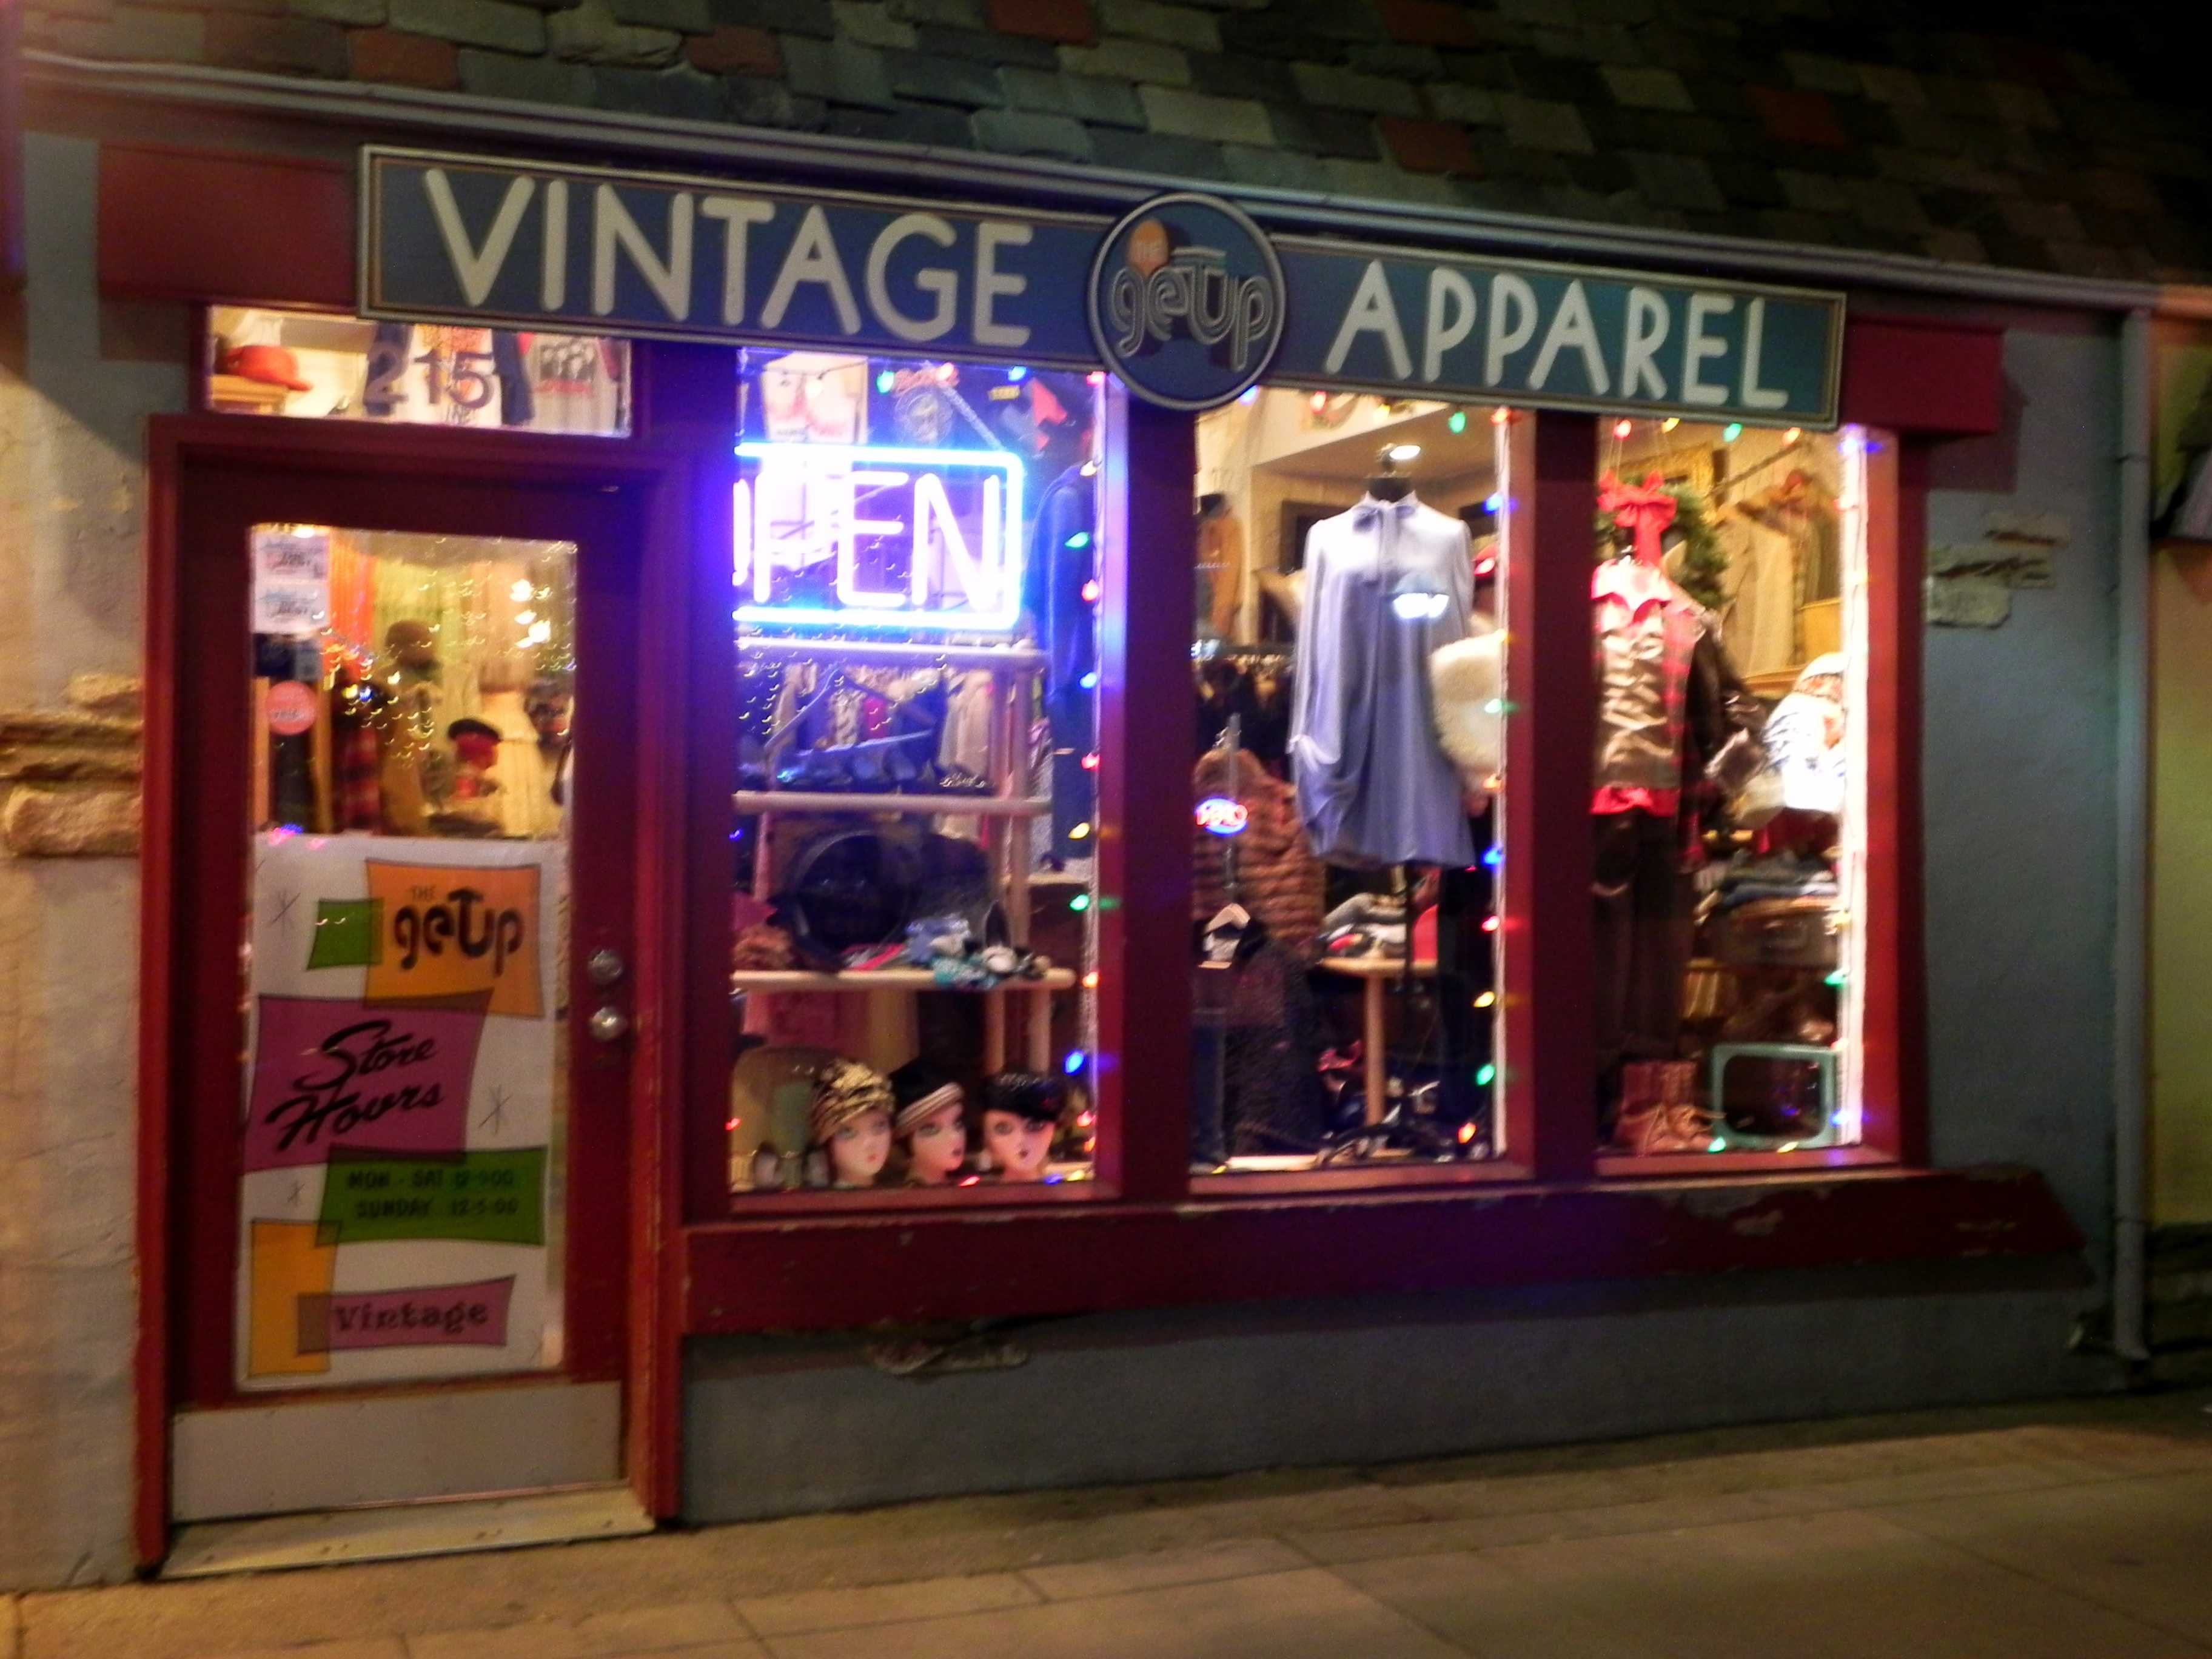 Kelly McLeod co-owns The Getup, a vintage apparel shop on State Street.